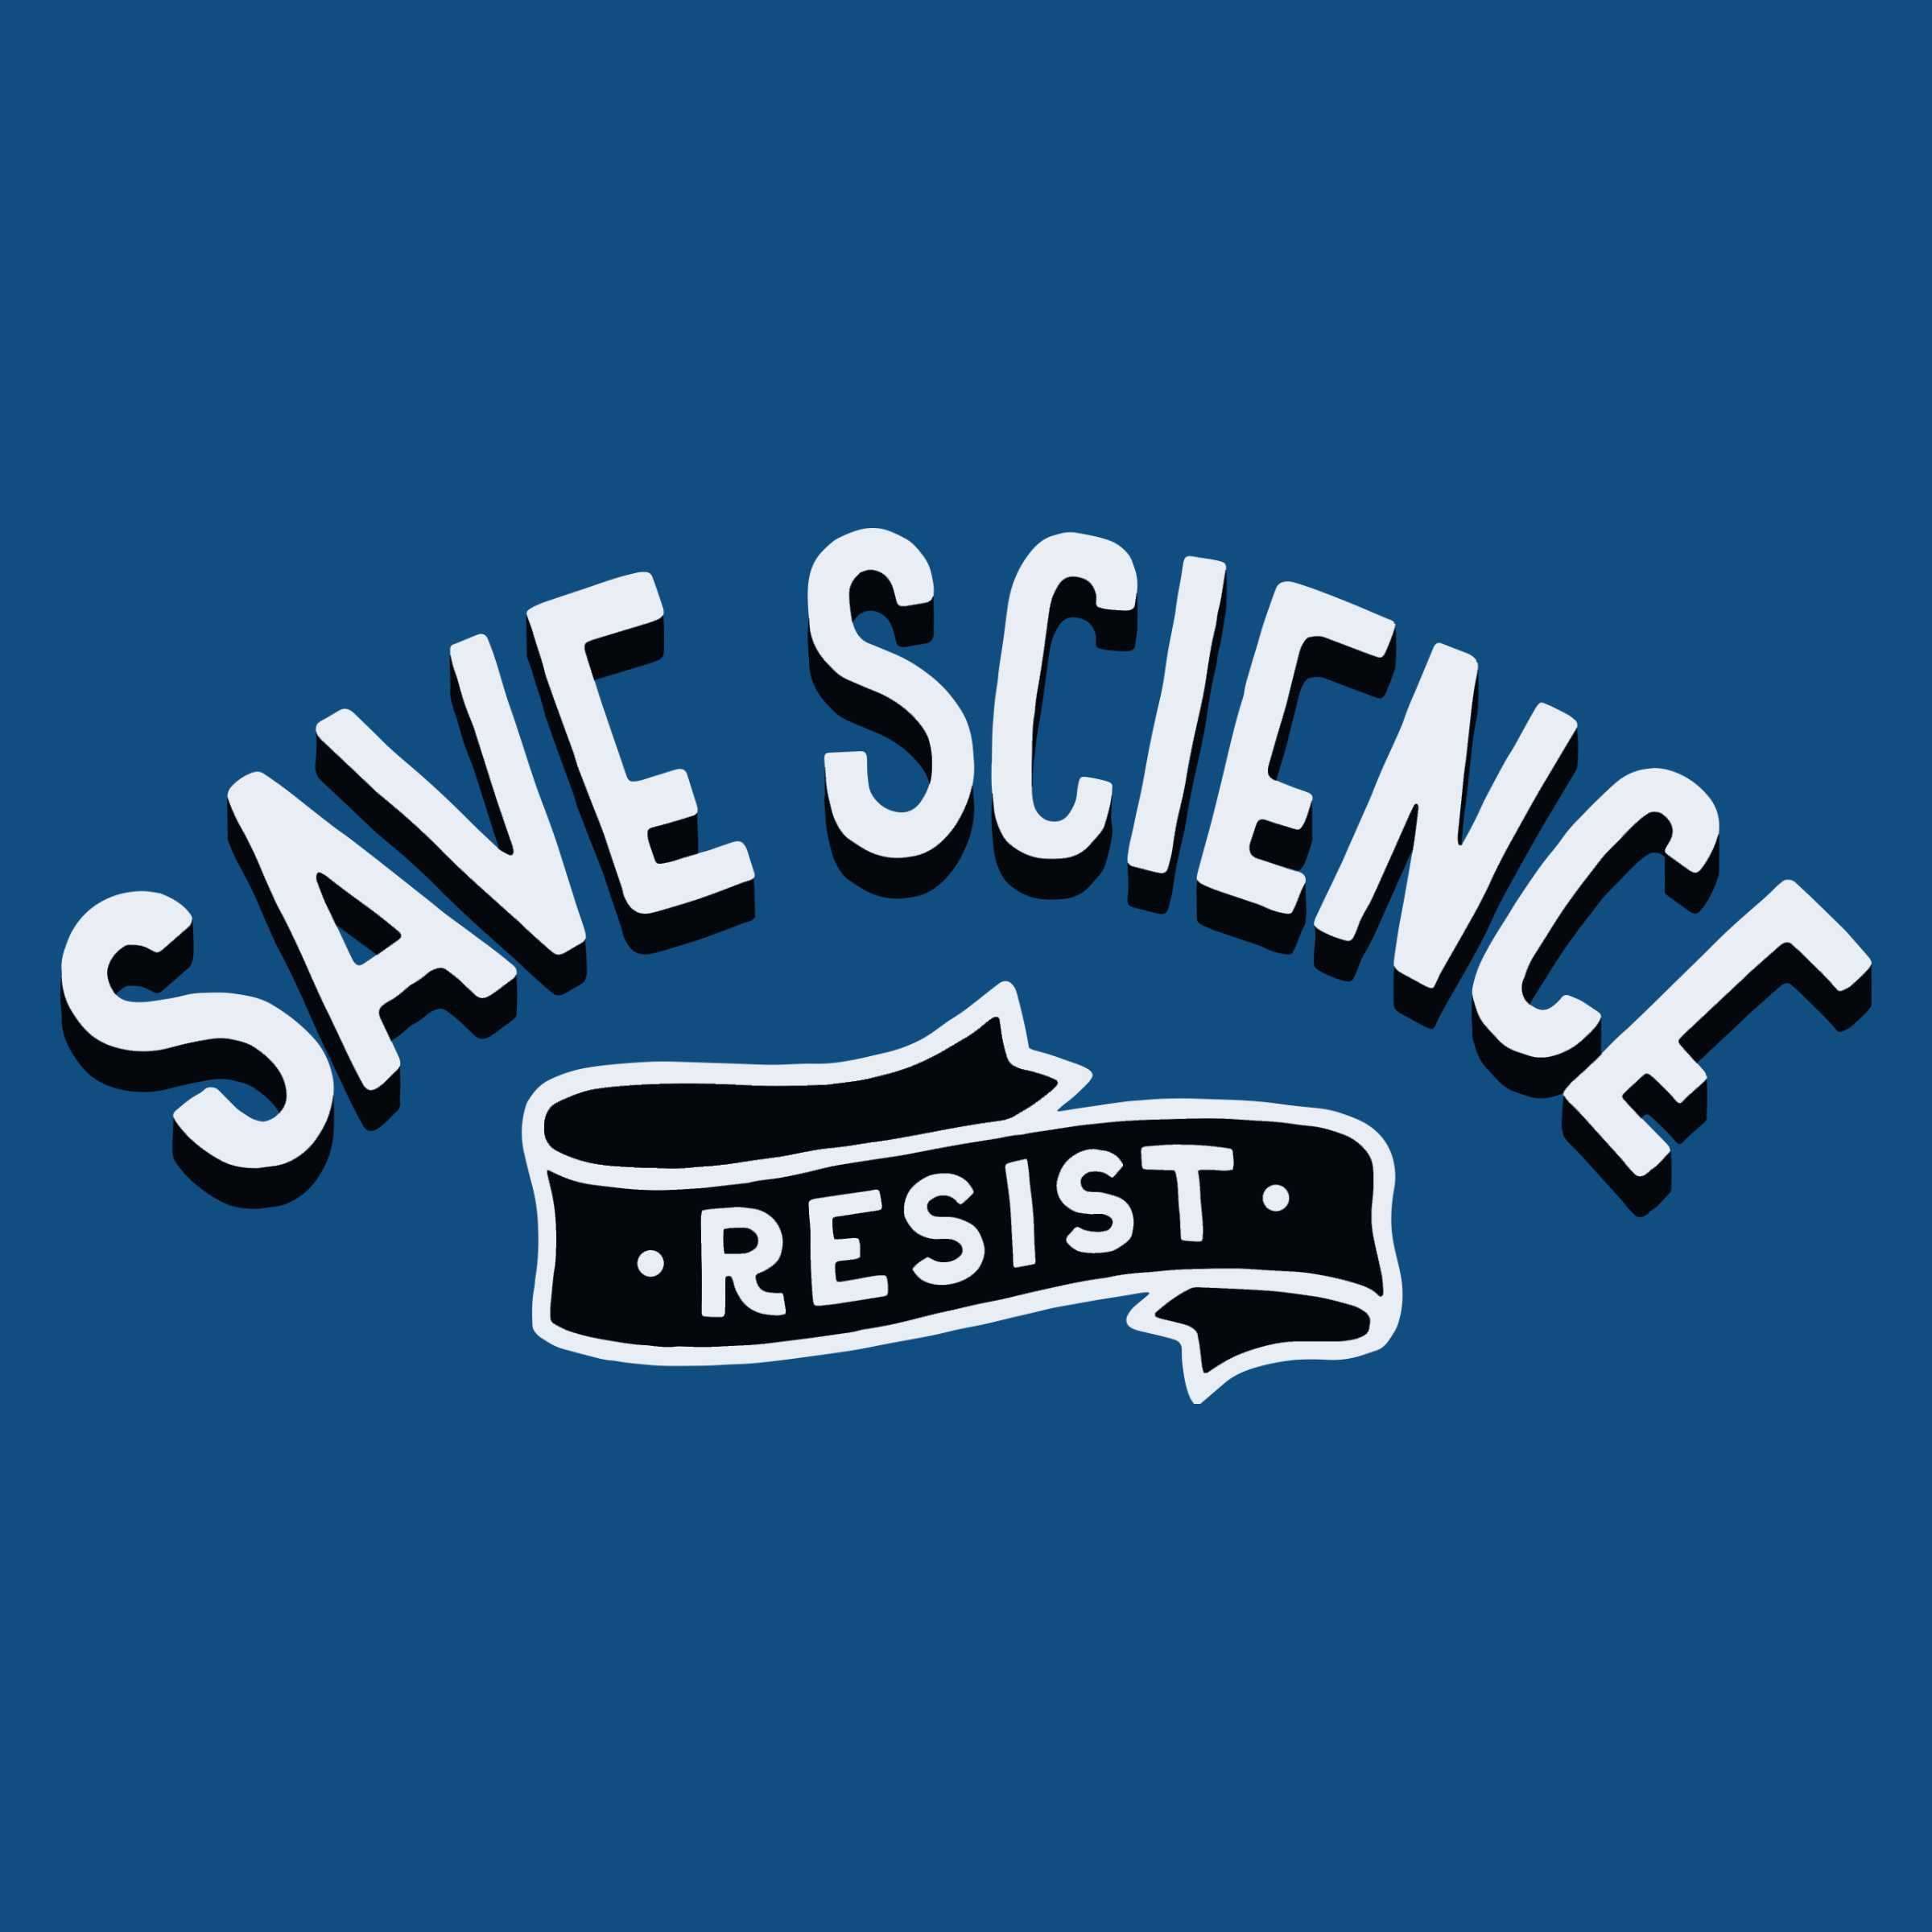 Save Science